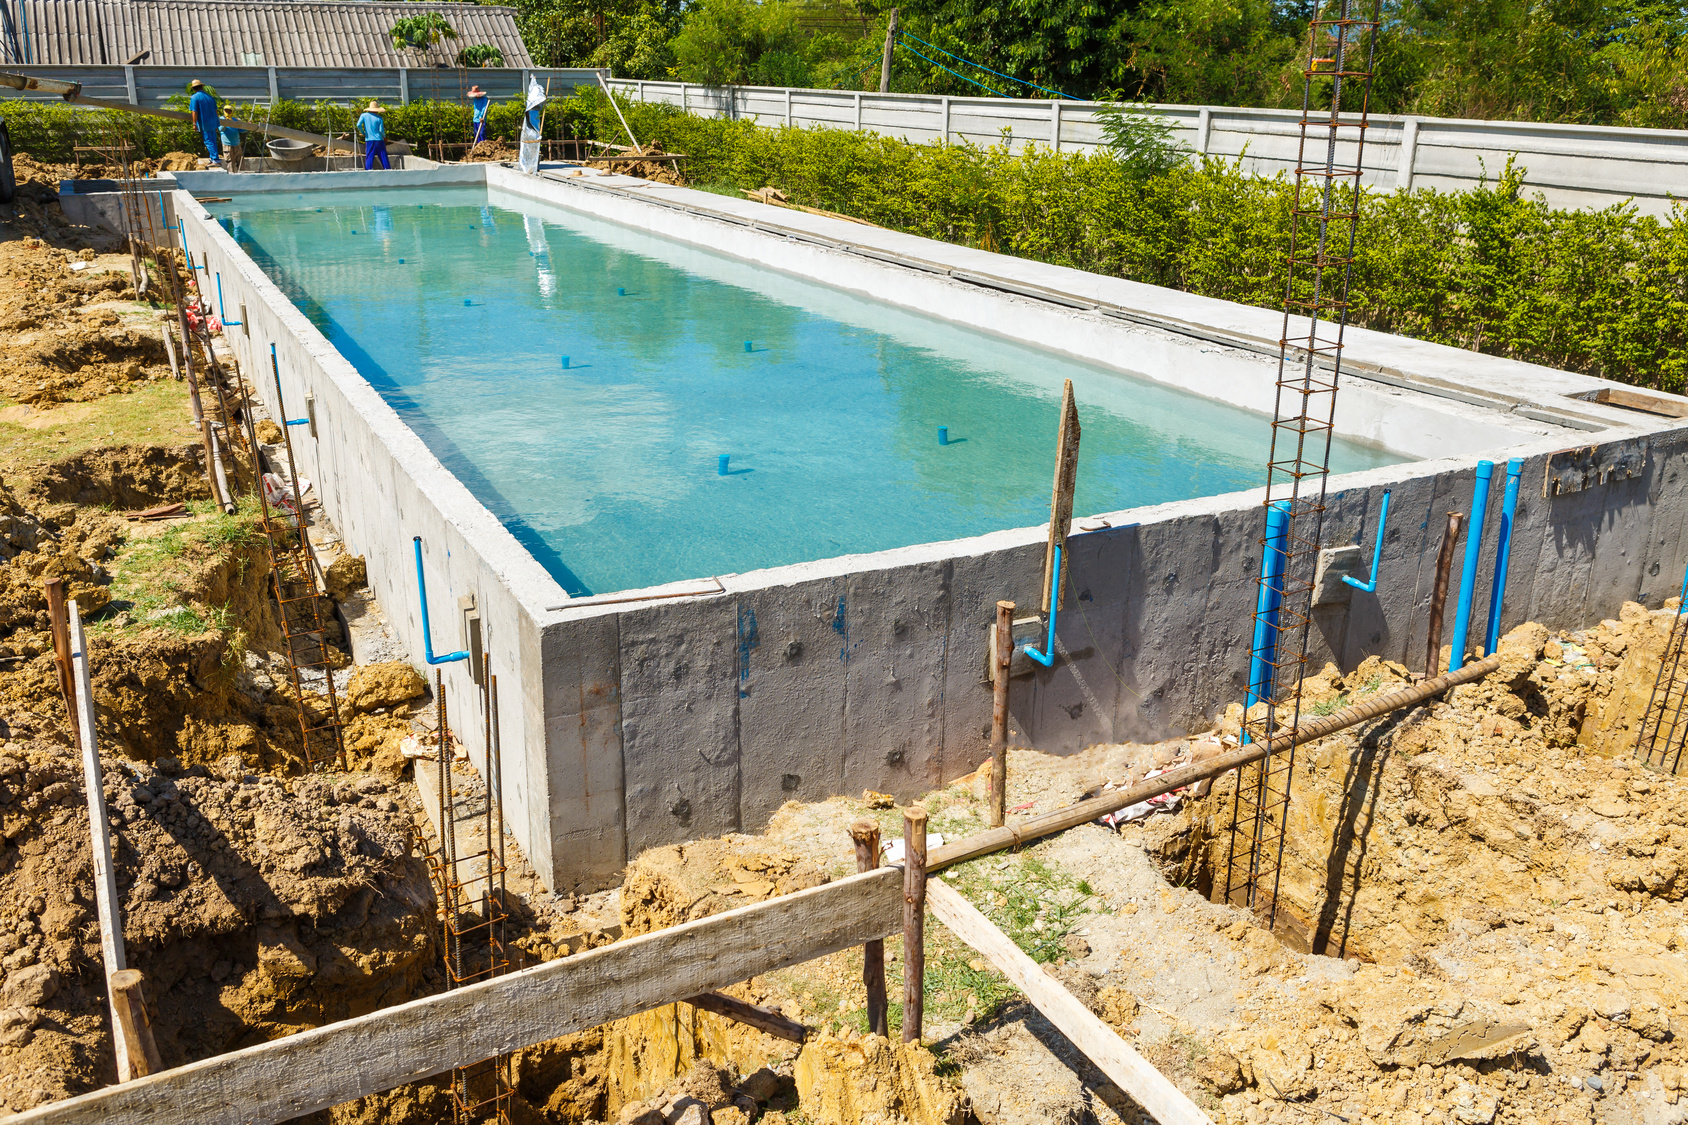 Construire une piscine b ton traditionnelle en kit for Construction d une piscine prix